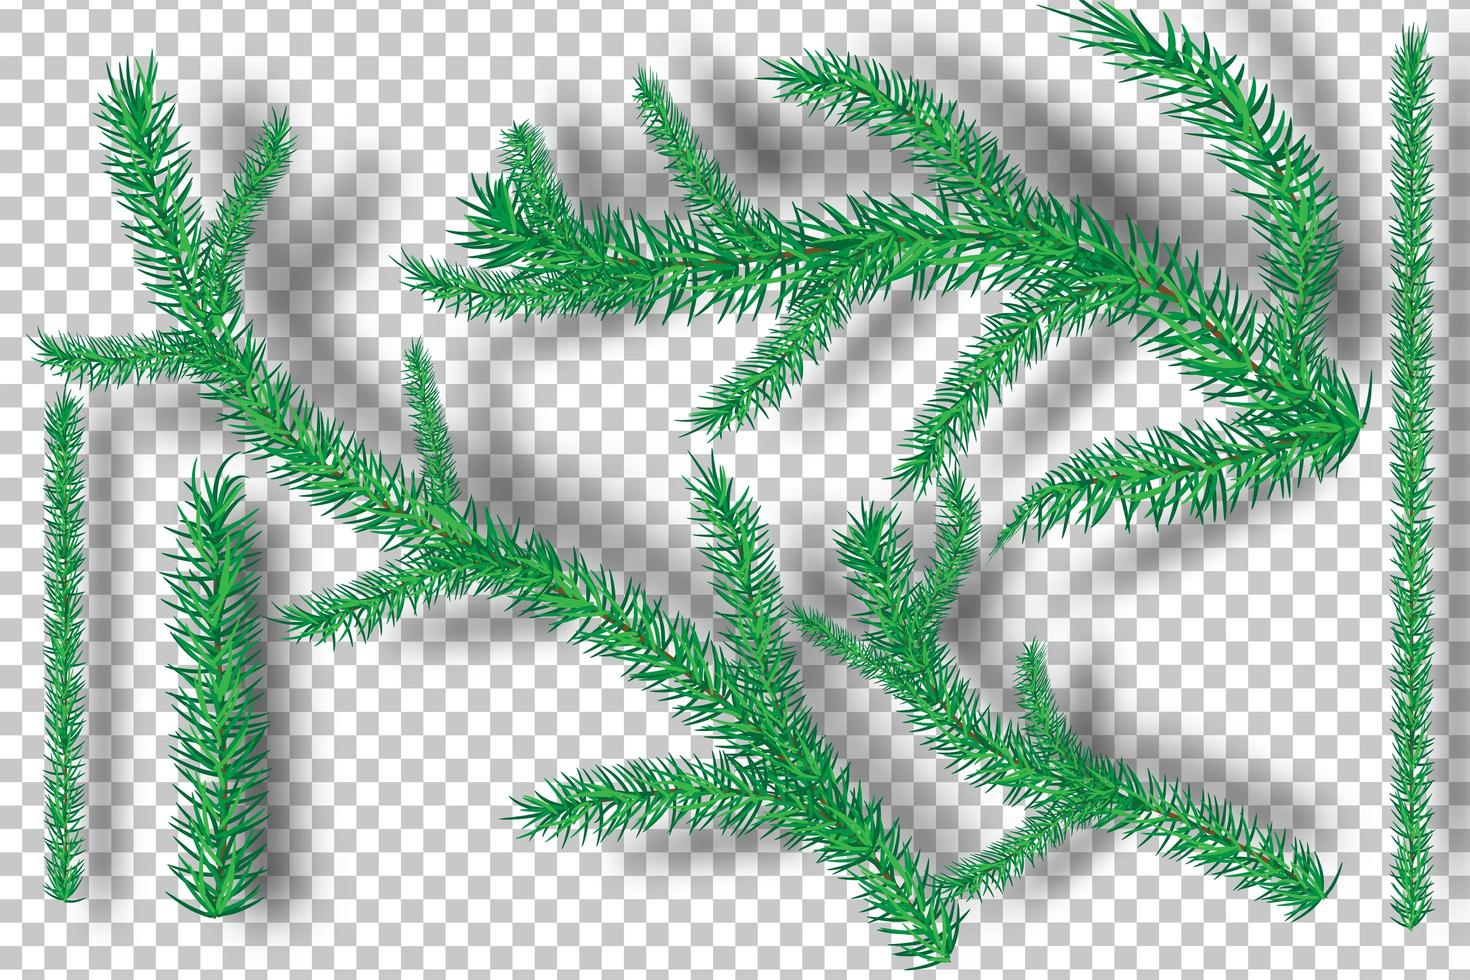 Christmas tree branches on transparency background vector